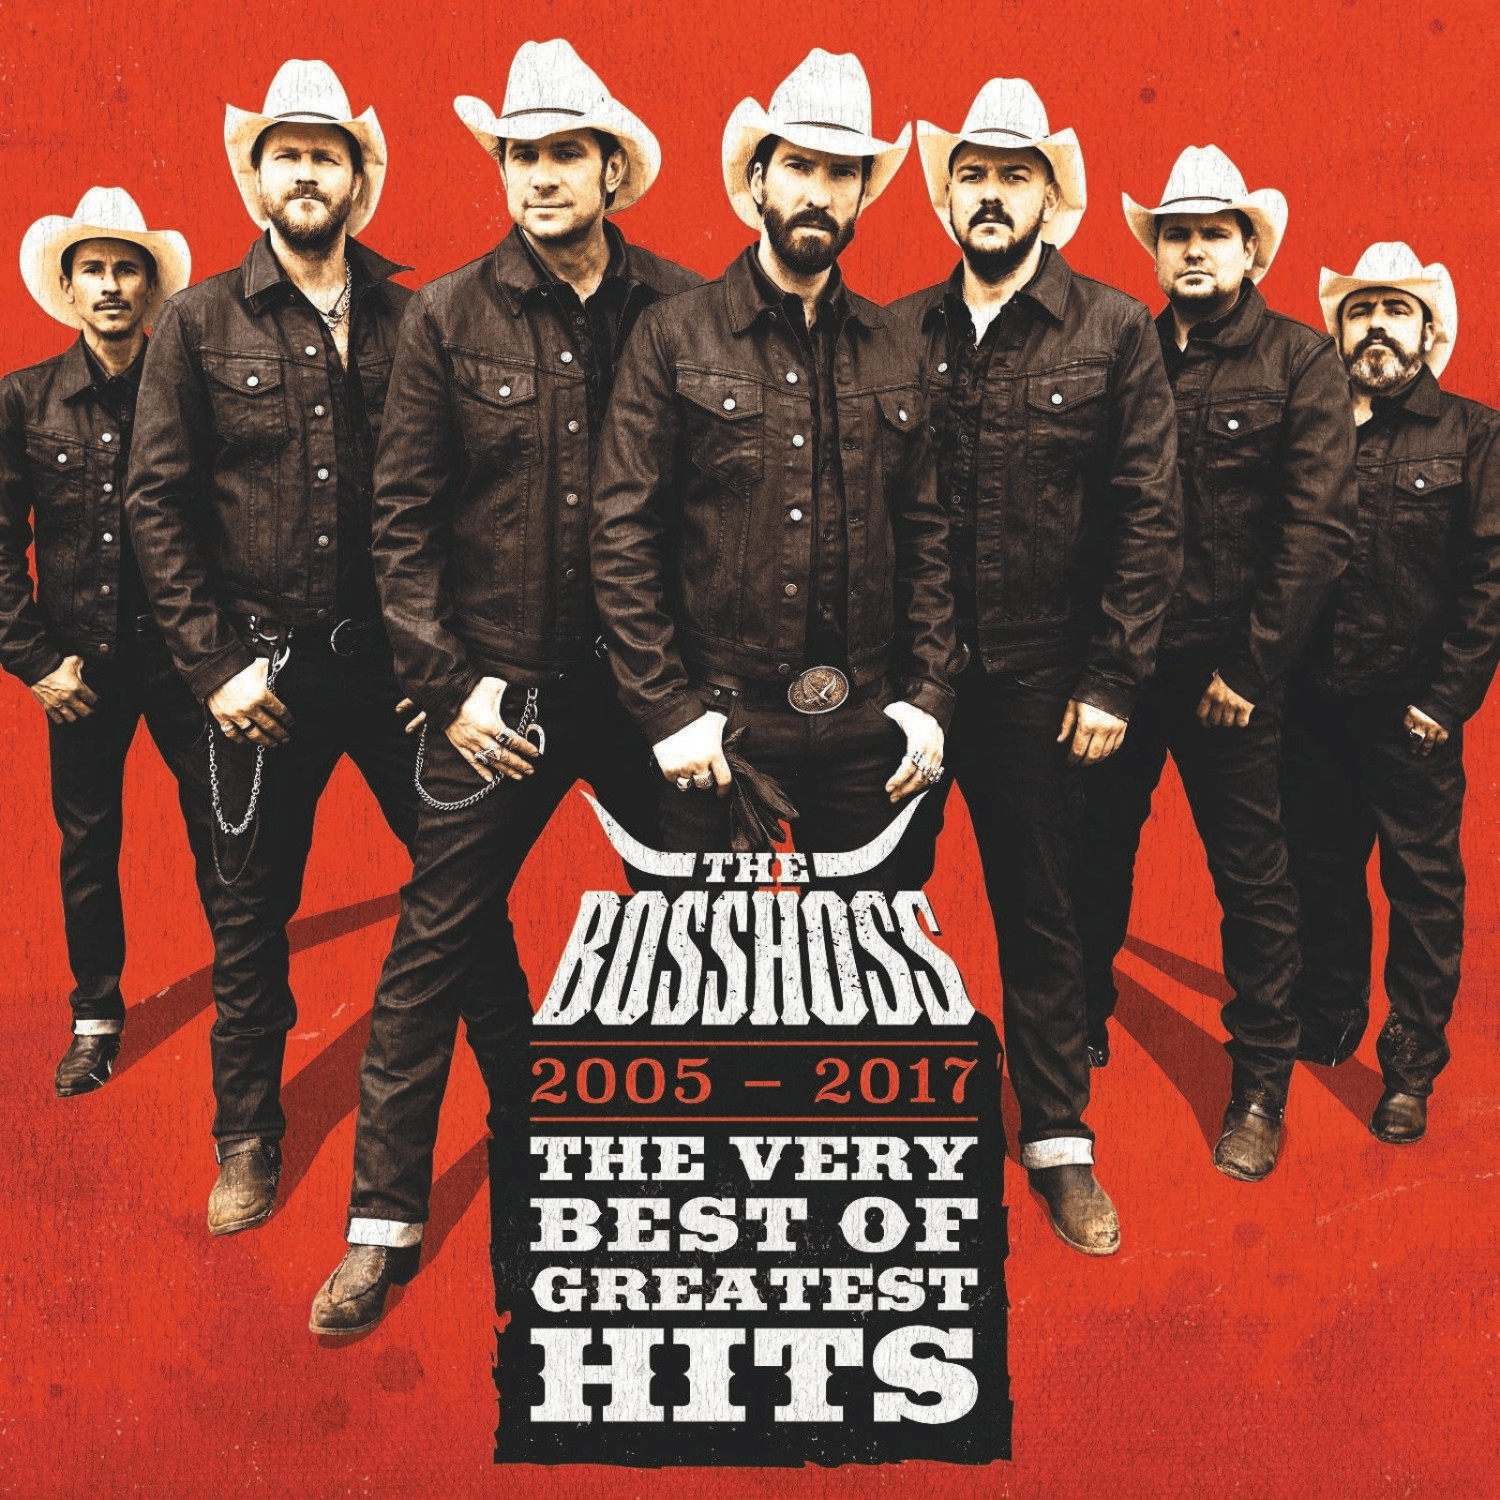 The BossHoss - The Very Best Of Greatest Hits (...